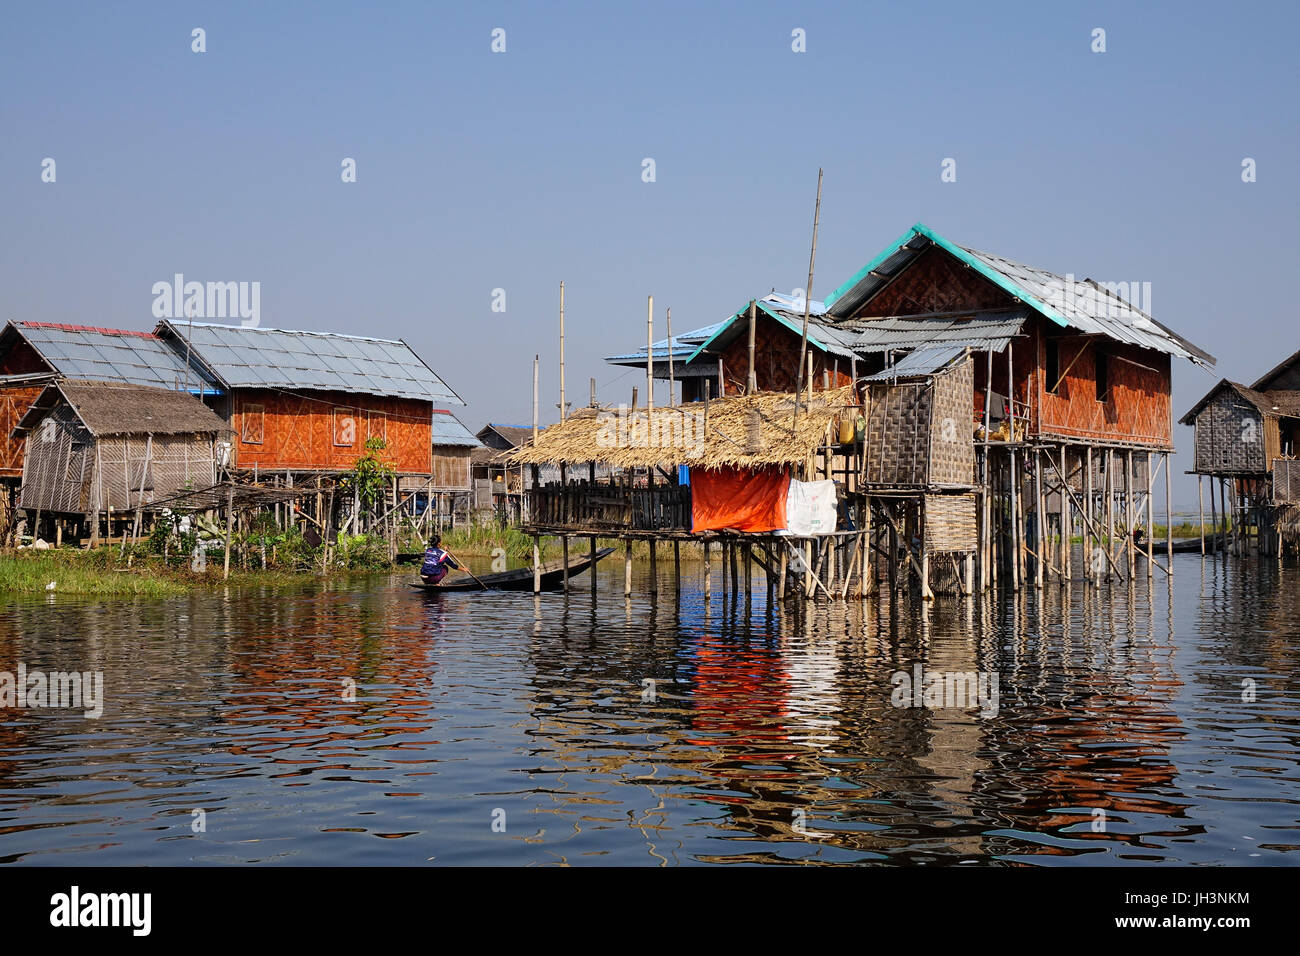 Burmese woman rowing boat at the village on Inle lake, Shan state, Myanmar. Inle Lake is a major tourist attraction, - Stock Image